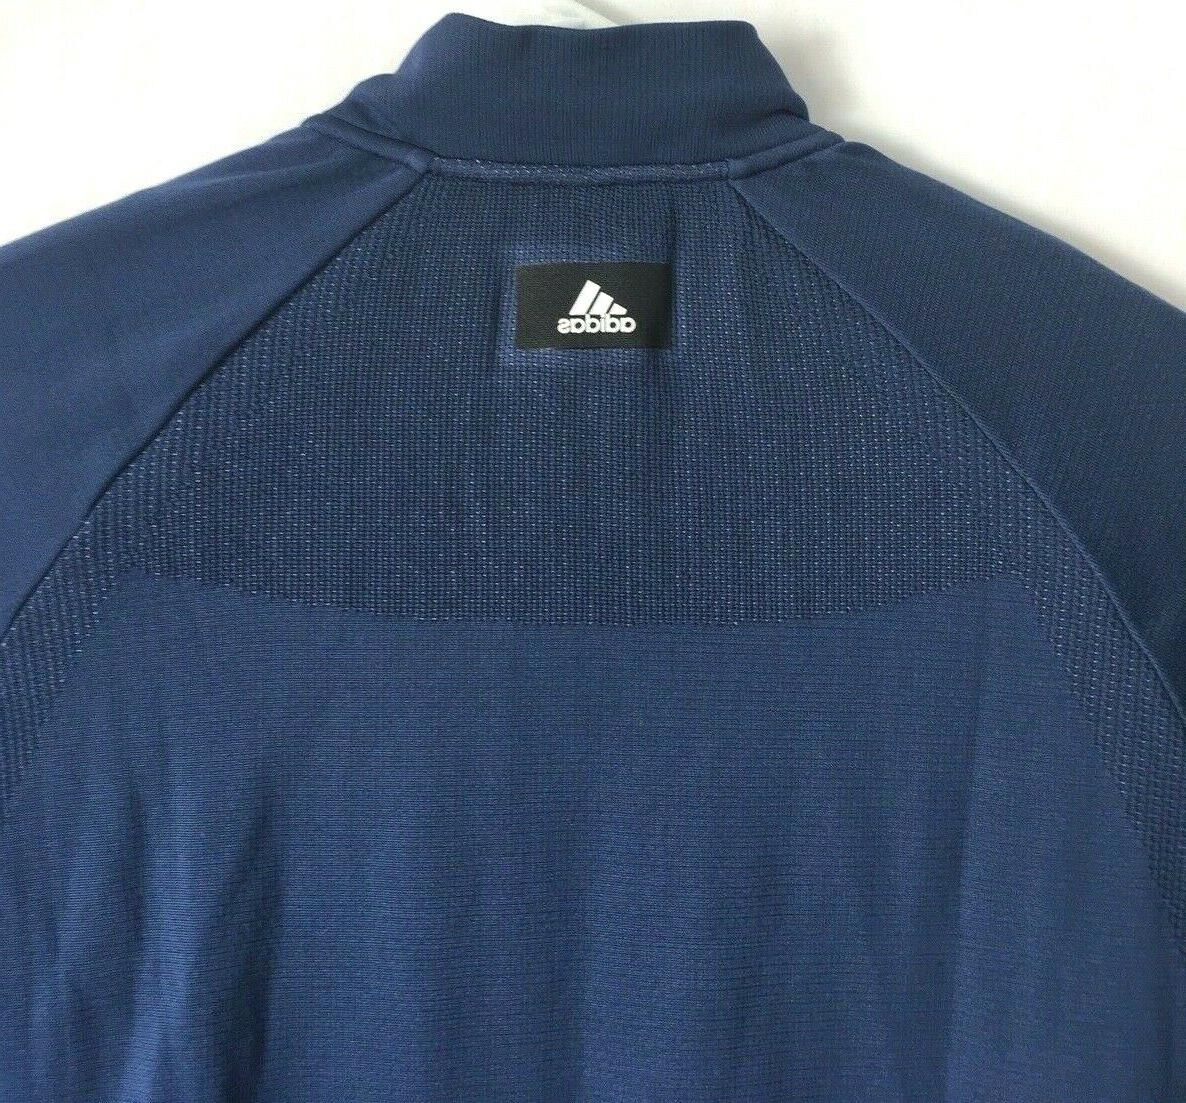 NWT Adidas Bomber Athletic Jacket Men's Size LARGE Blue $120